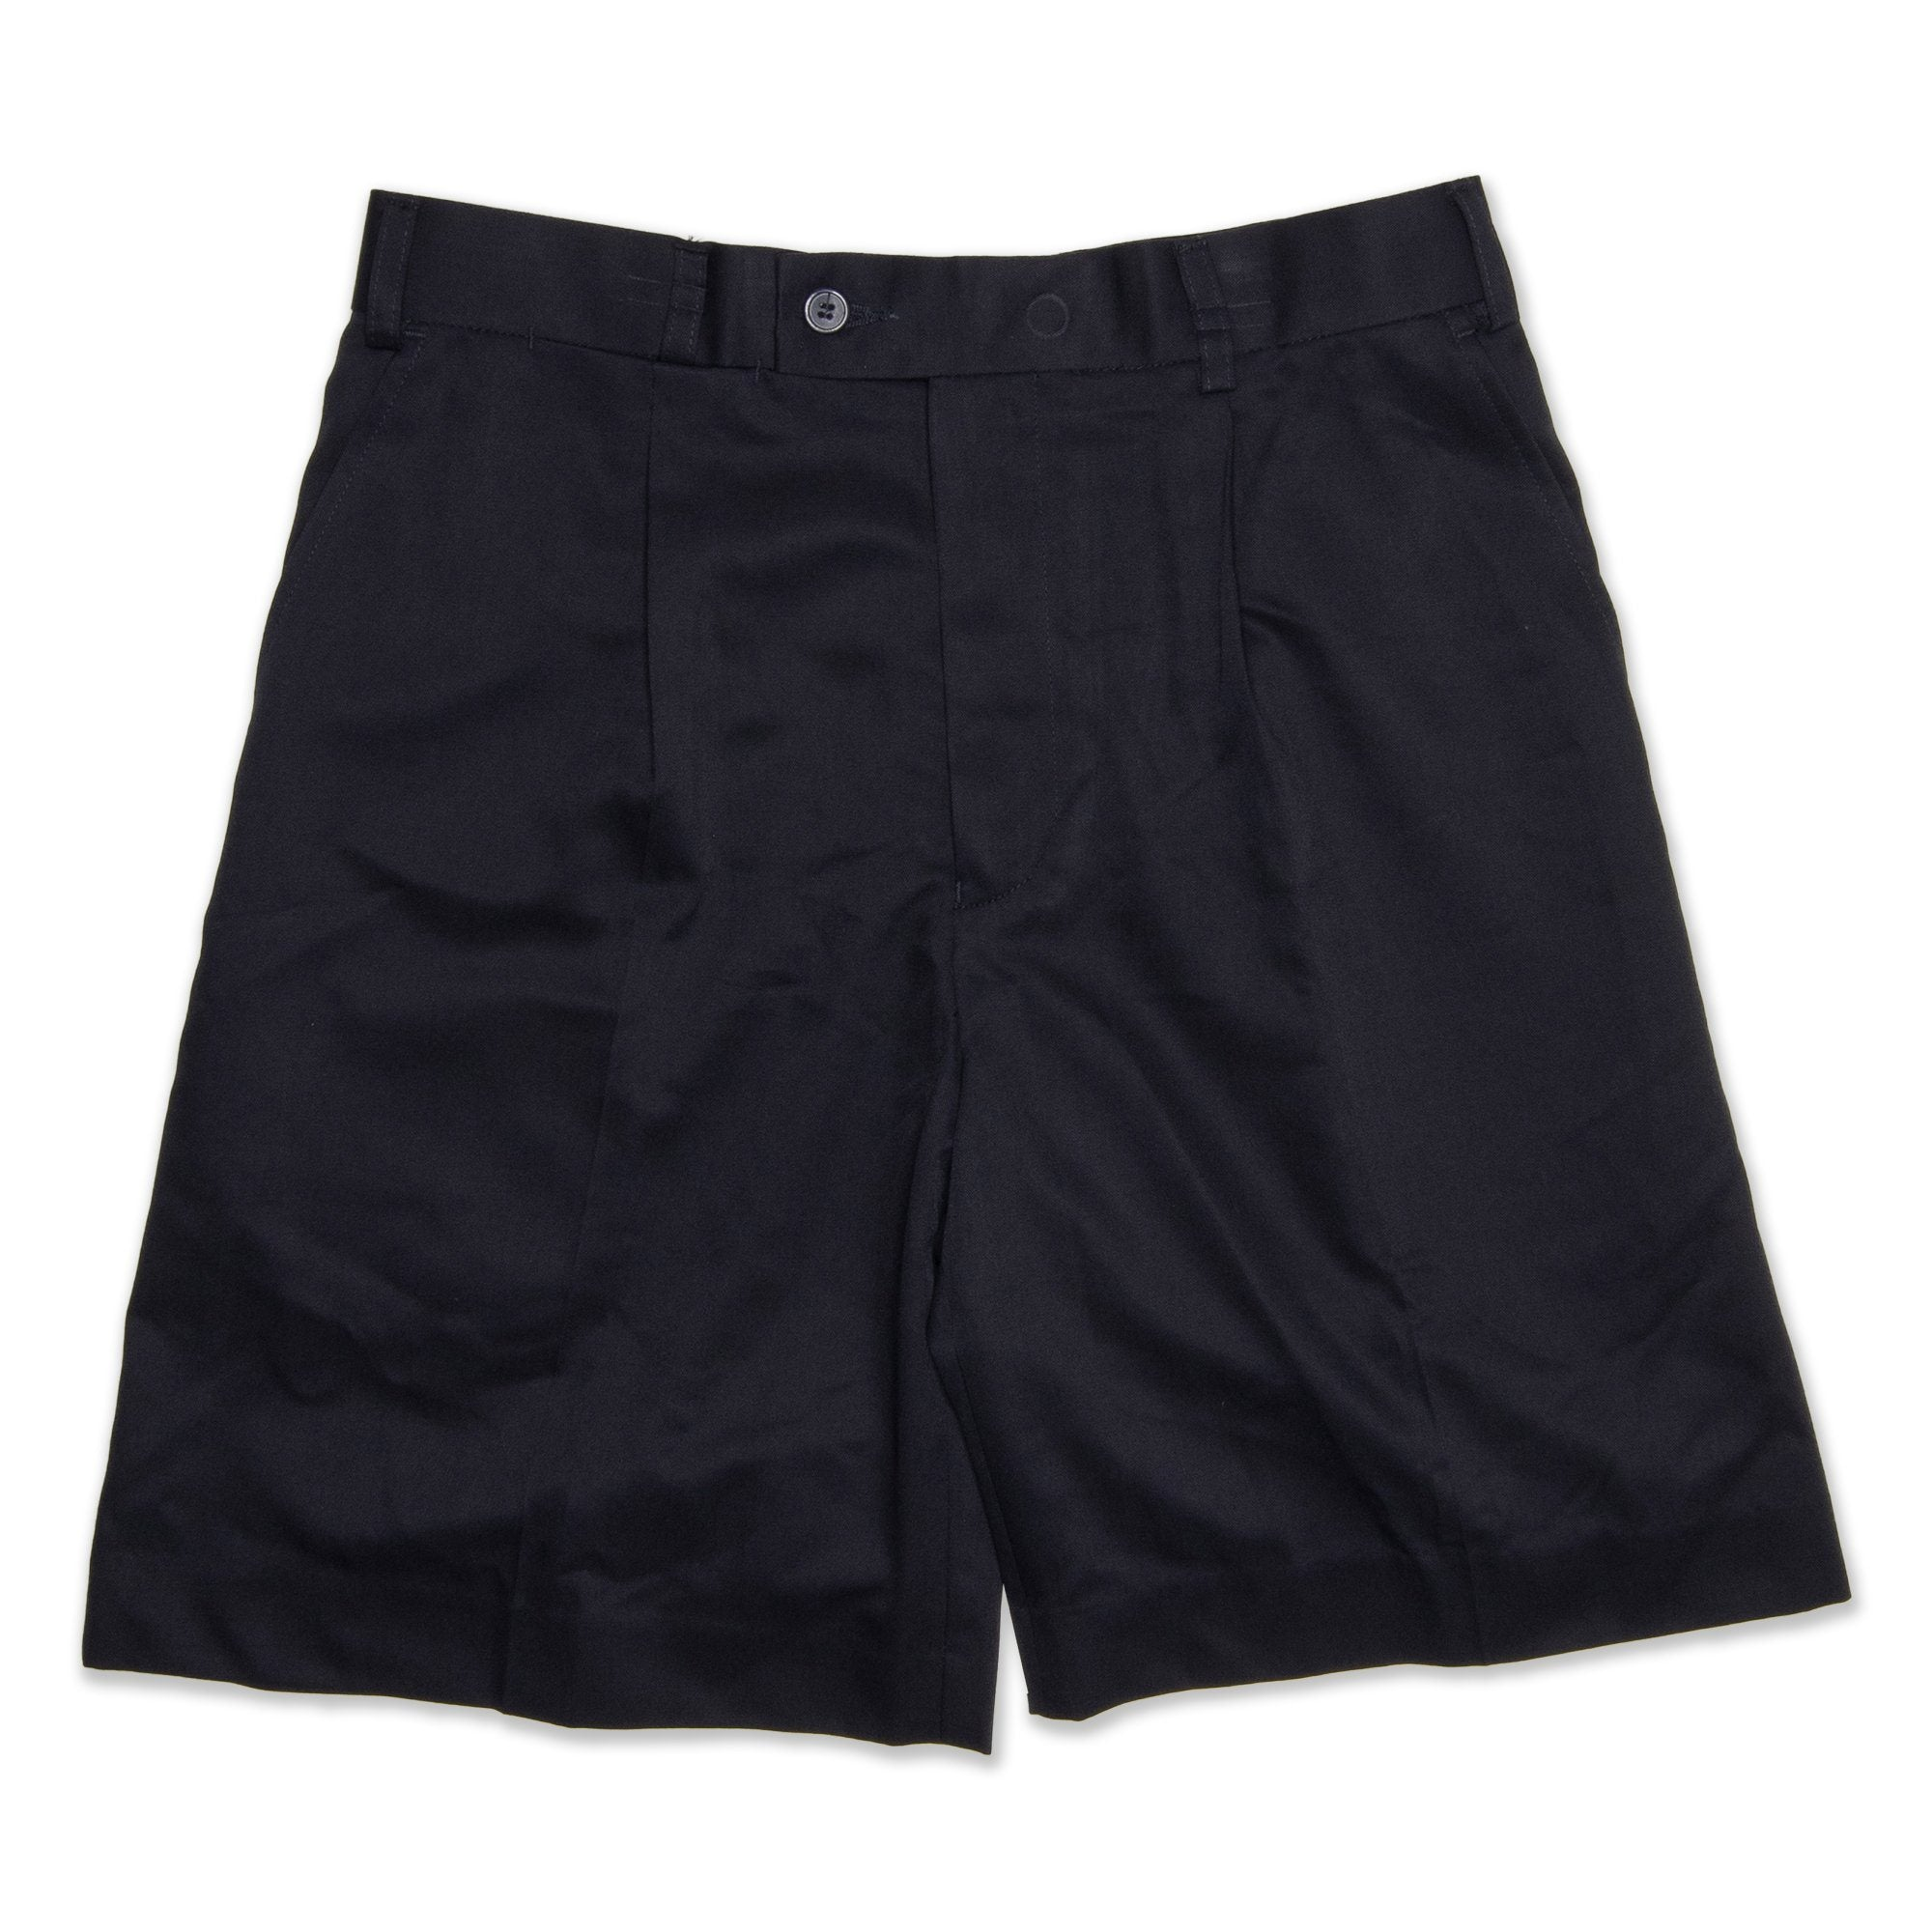 NNT Pleat Men's Shorts - Navy Workwear NNT